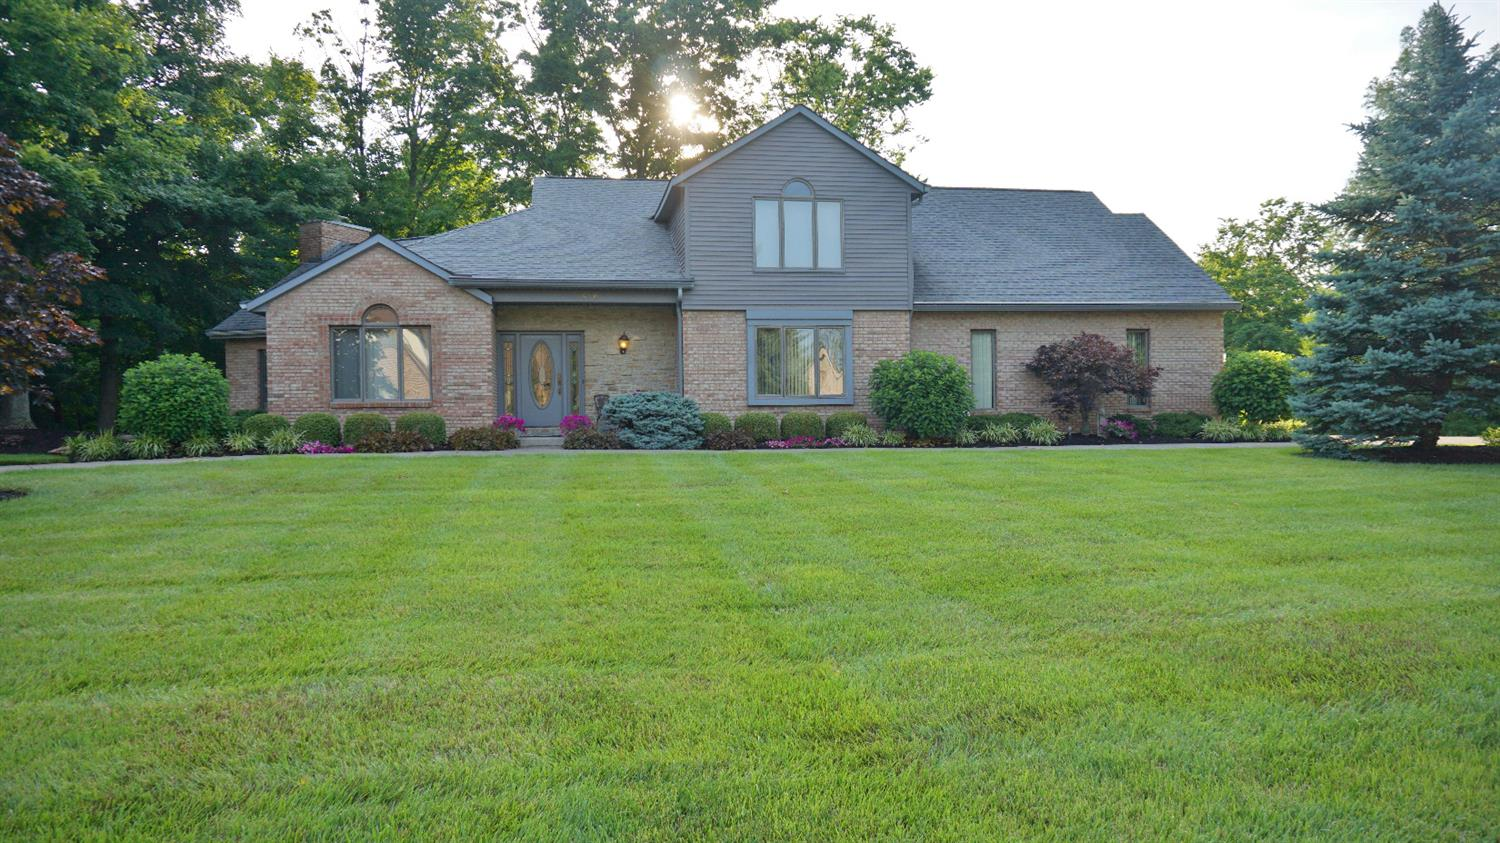 Property for sale at 5650 Krystal Court, Colerain Twp,  Ohio 45252